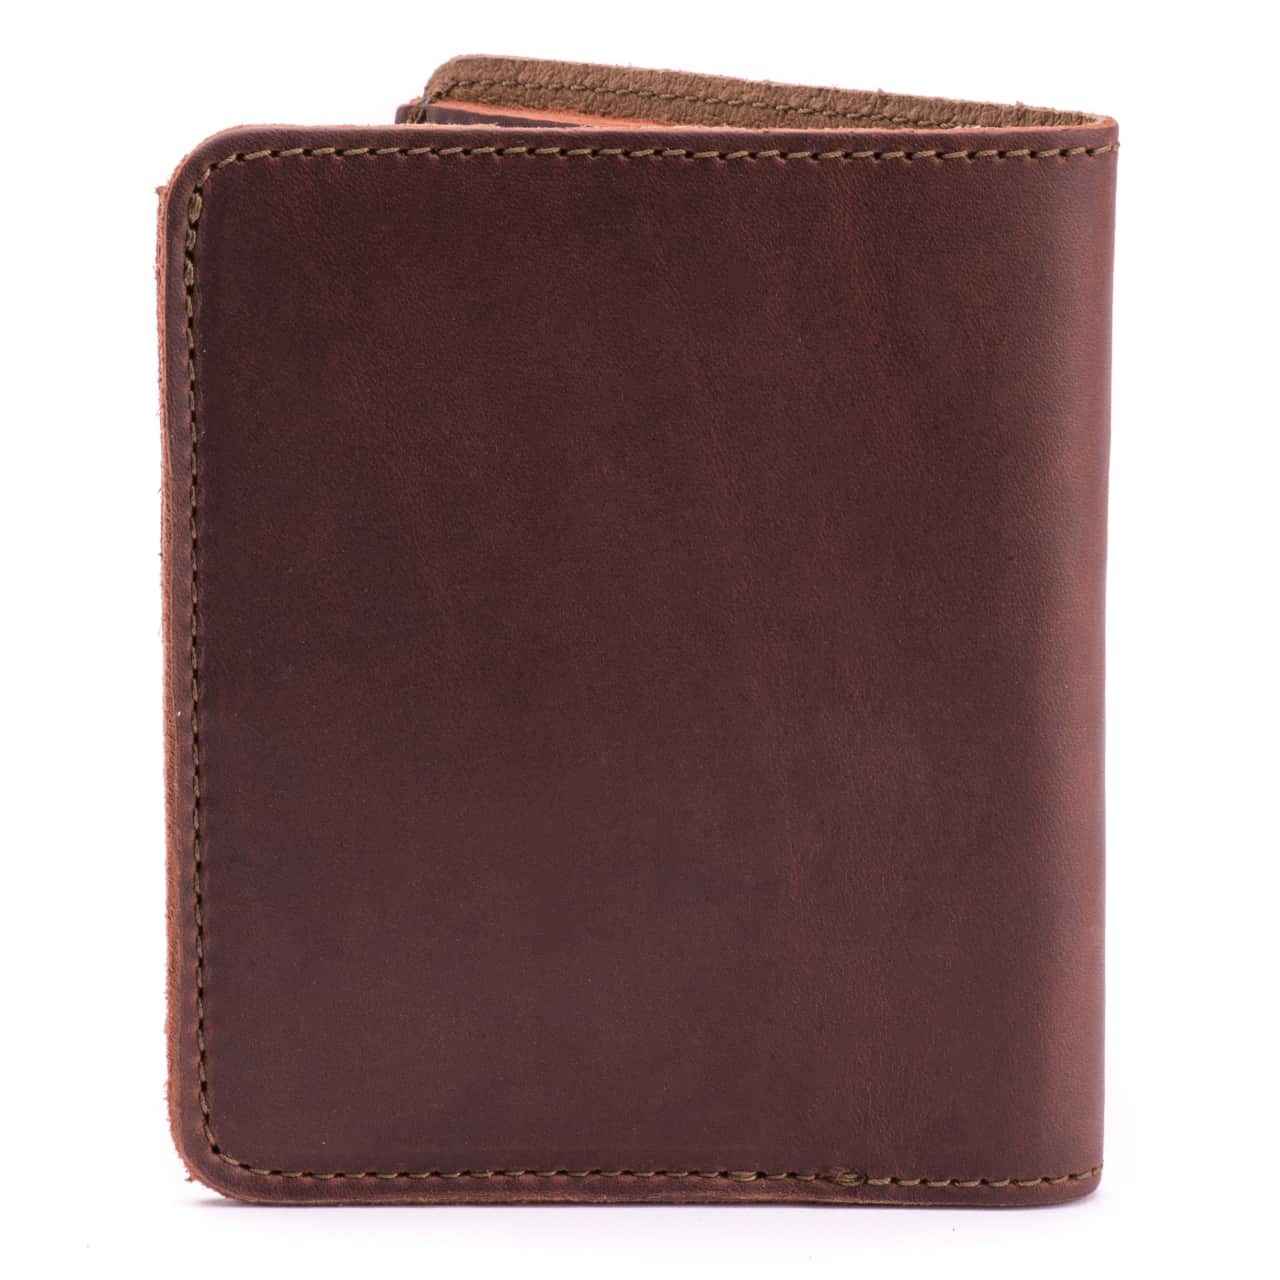 large leather bifold wallet large in chestnut leather